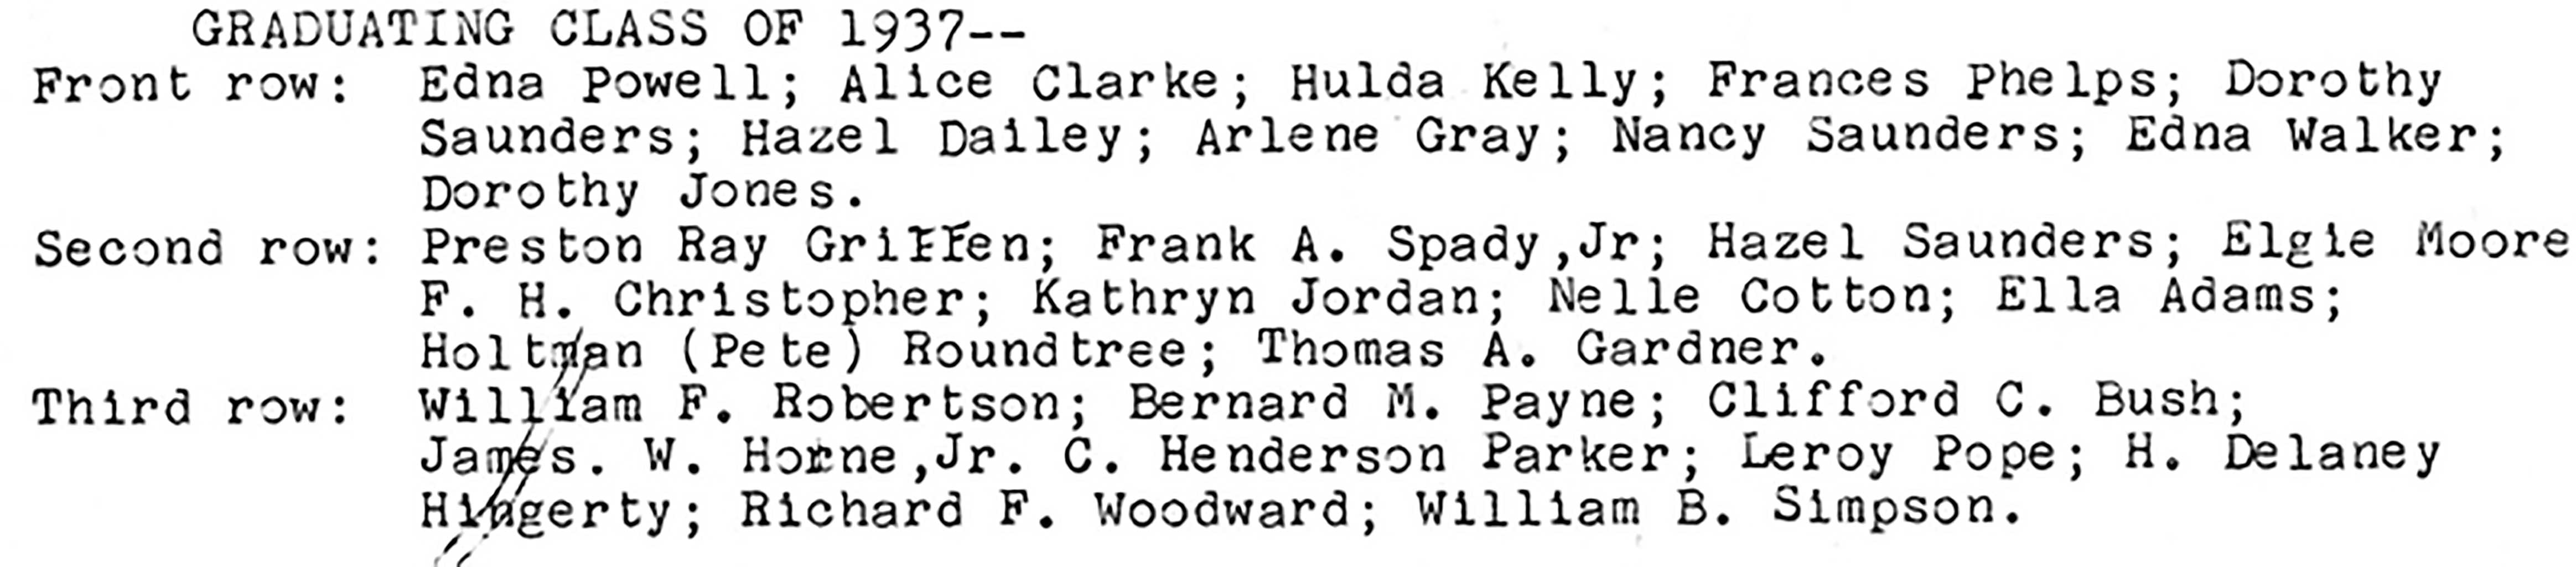 names-of-CHS-graduating-class-of-1937-img572